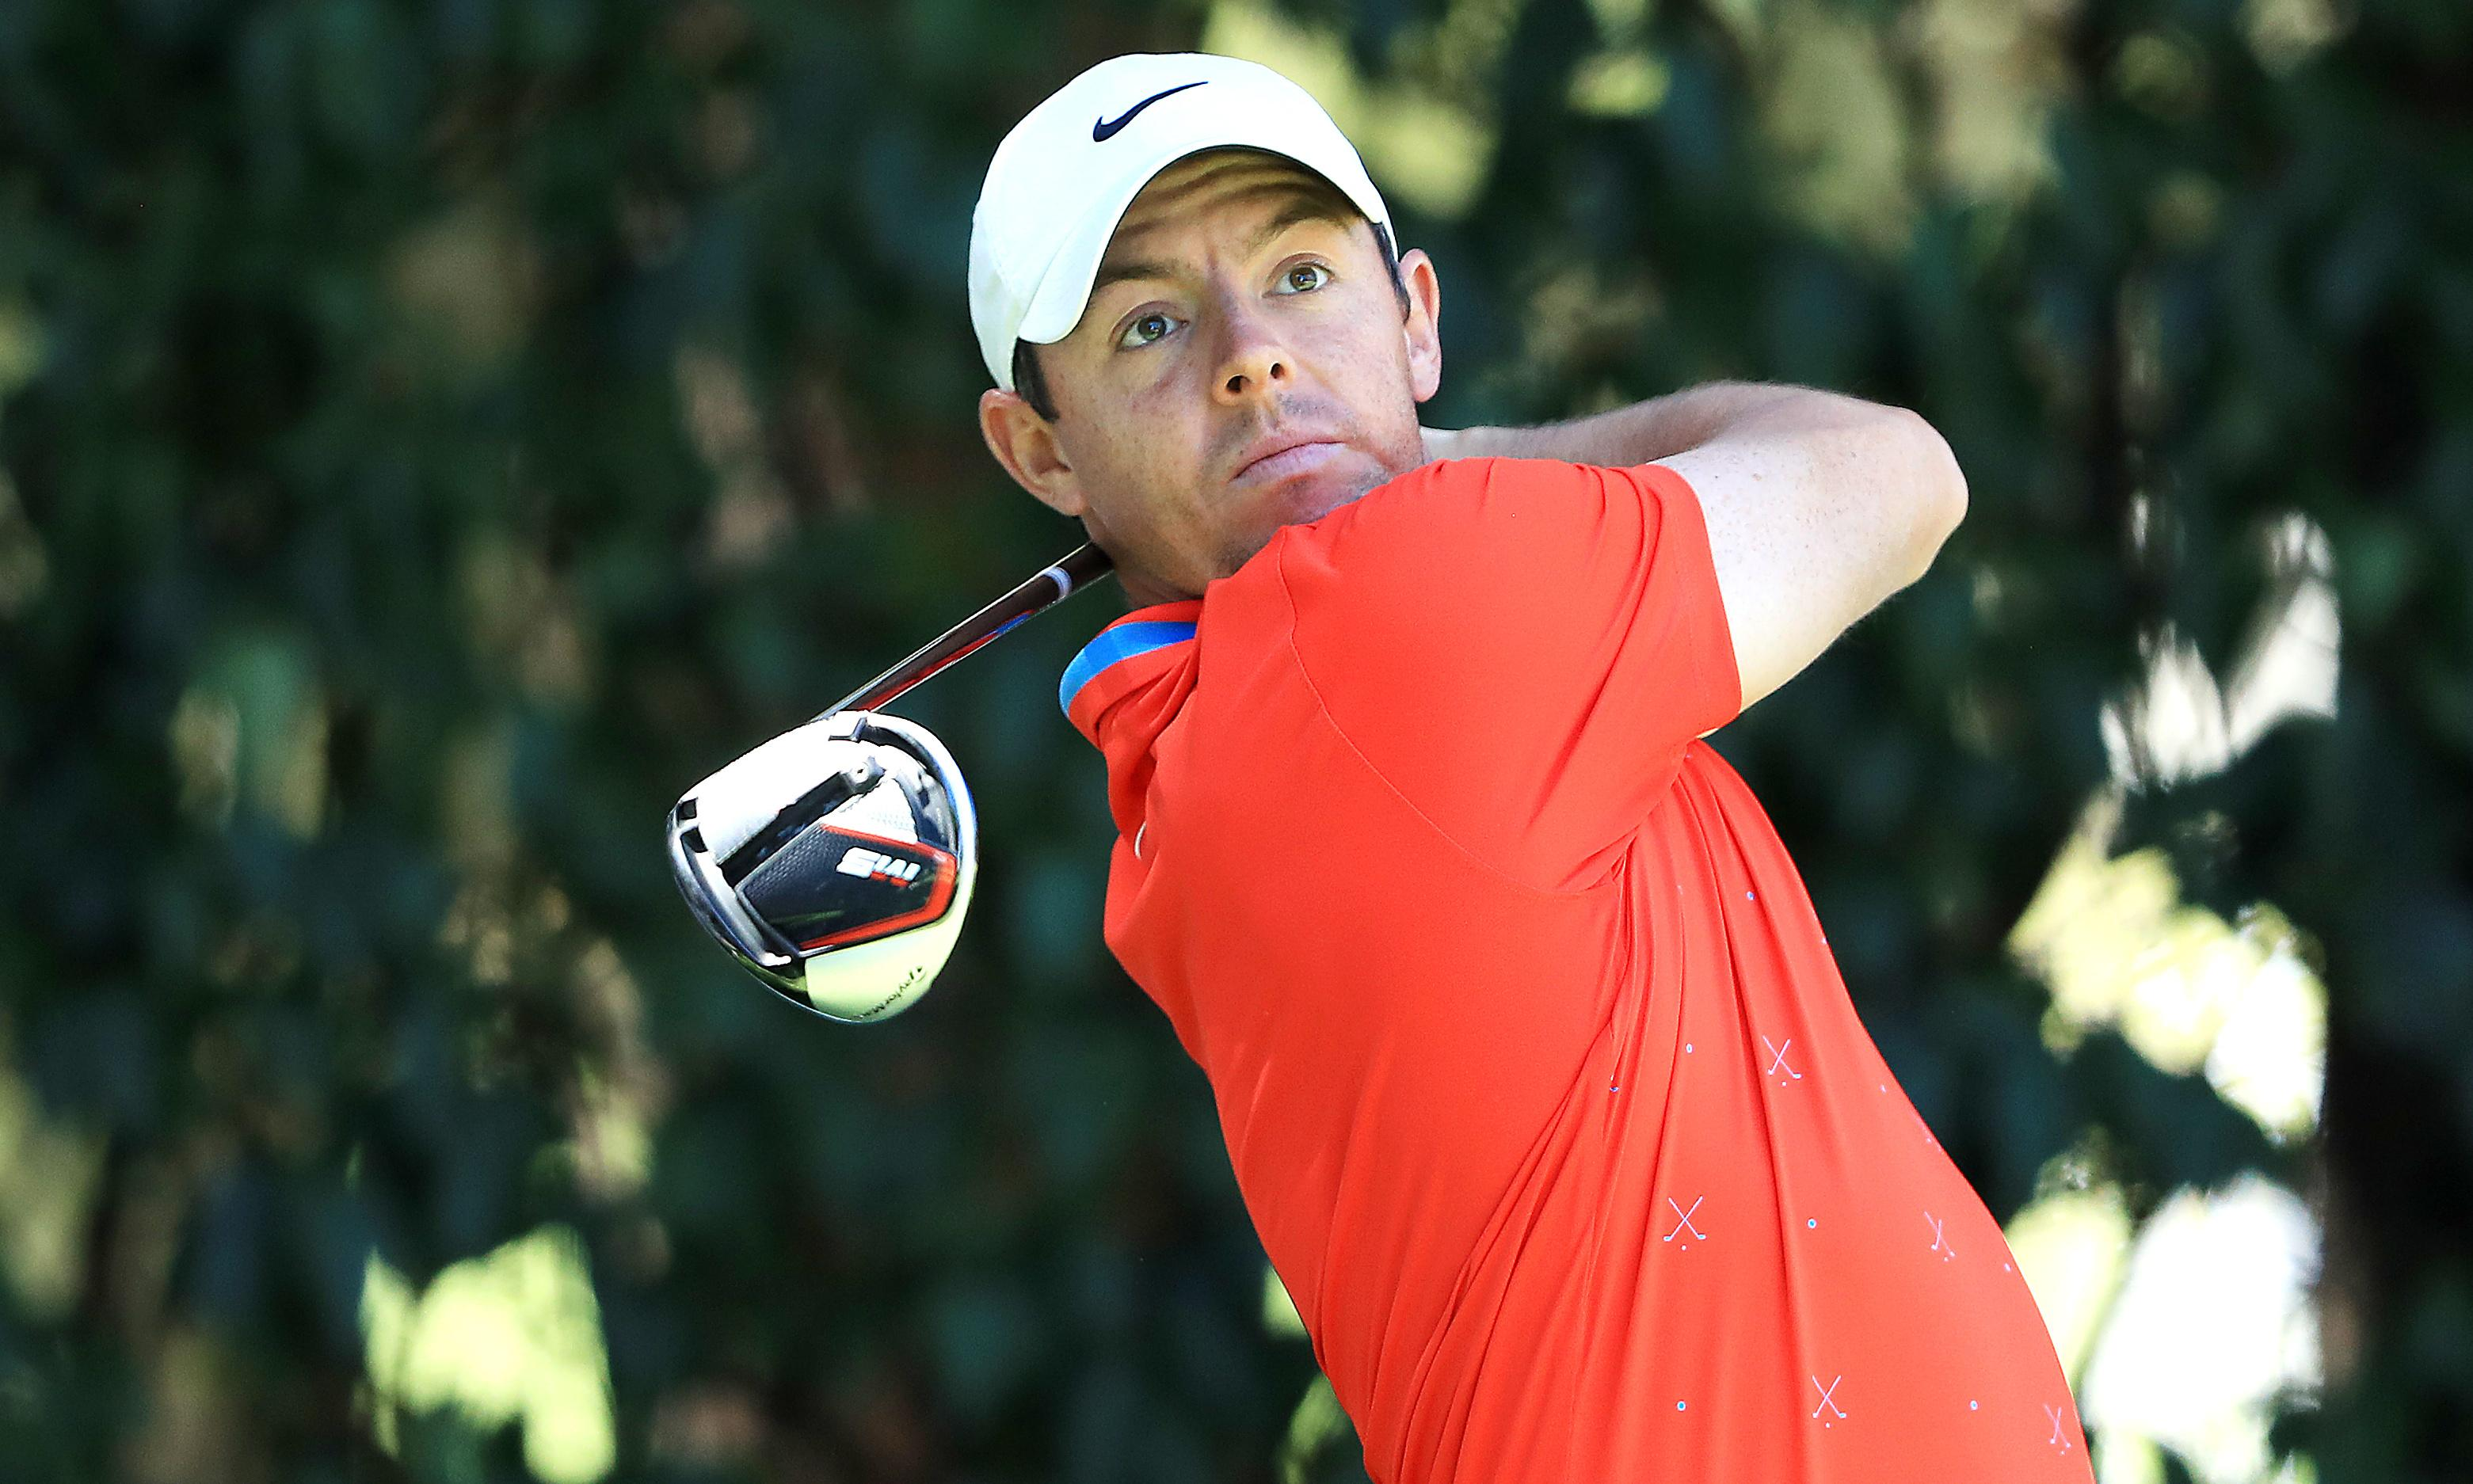 Rory McIlroy sets off with a bang to lead WGC-Mexico Championship